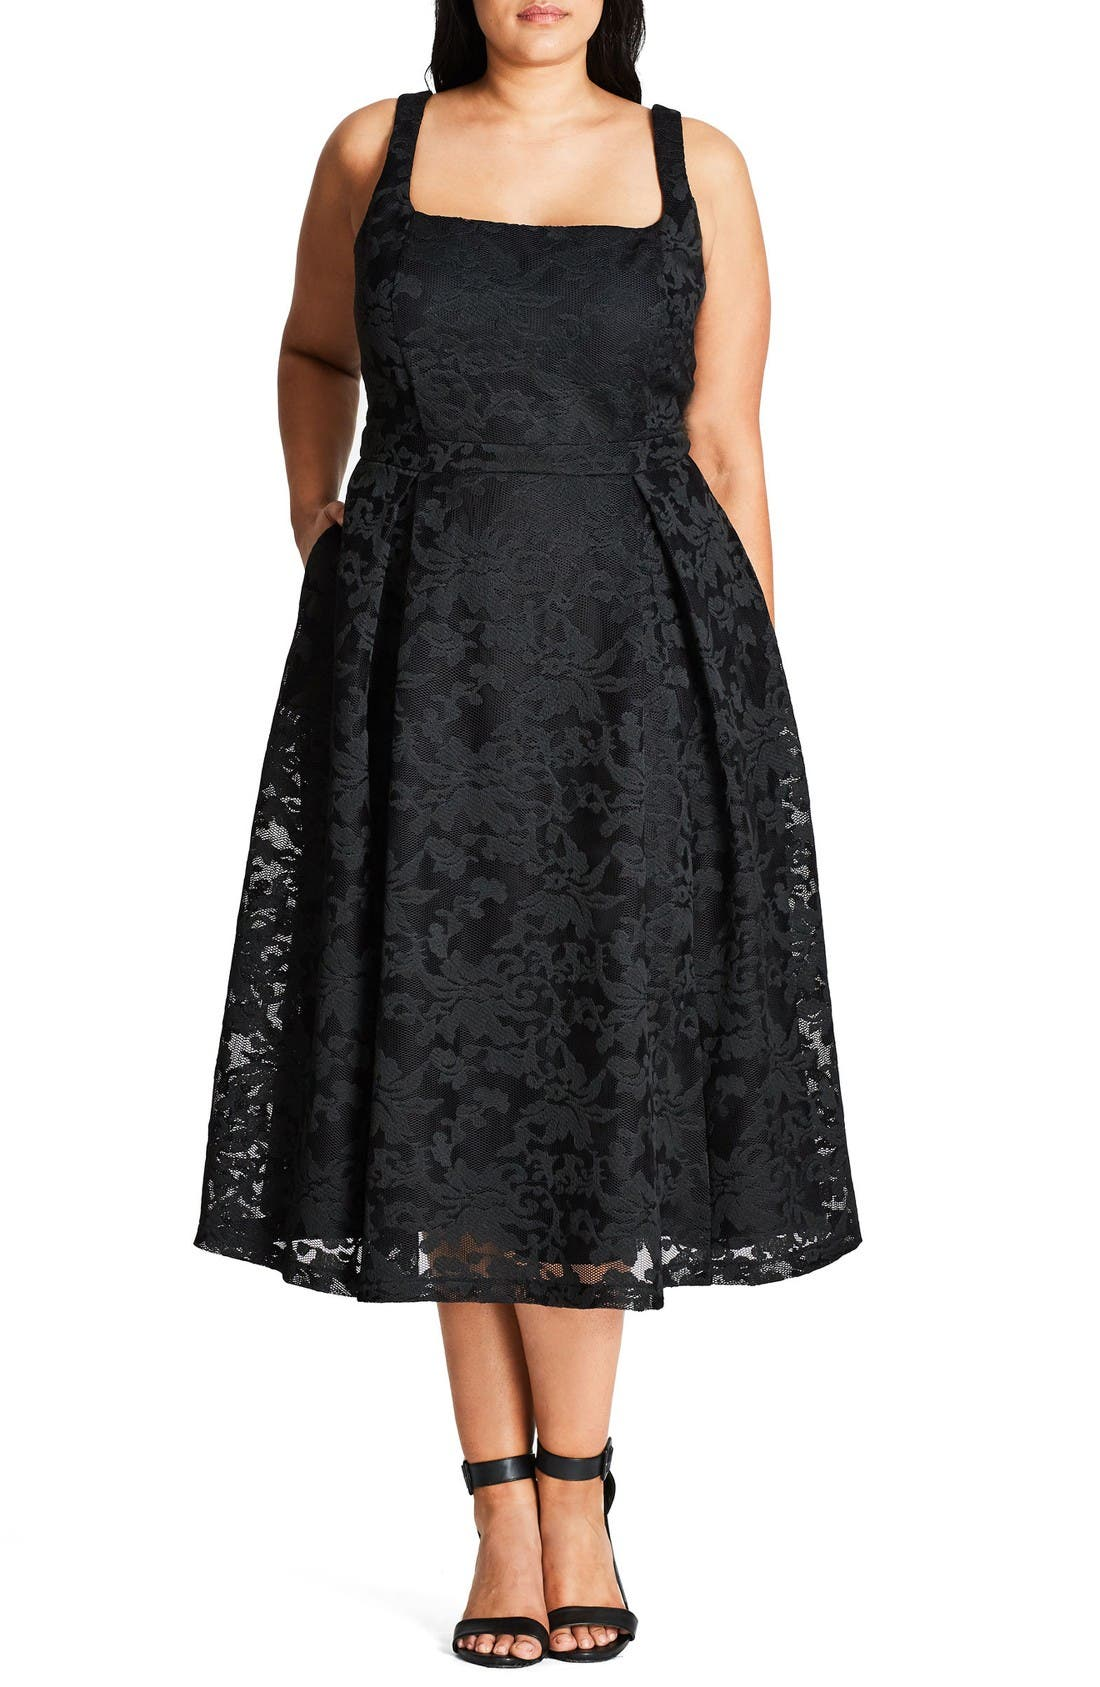 Dresses for plus size to wear to a wedding